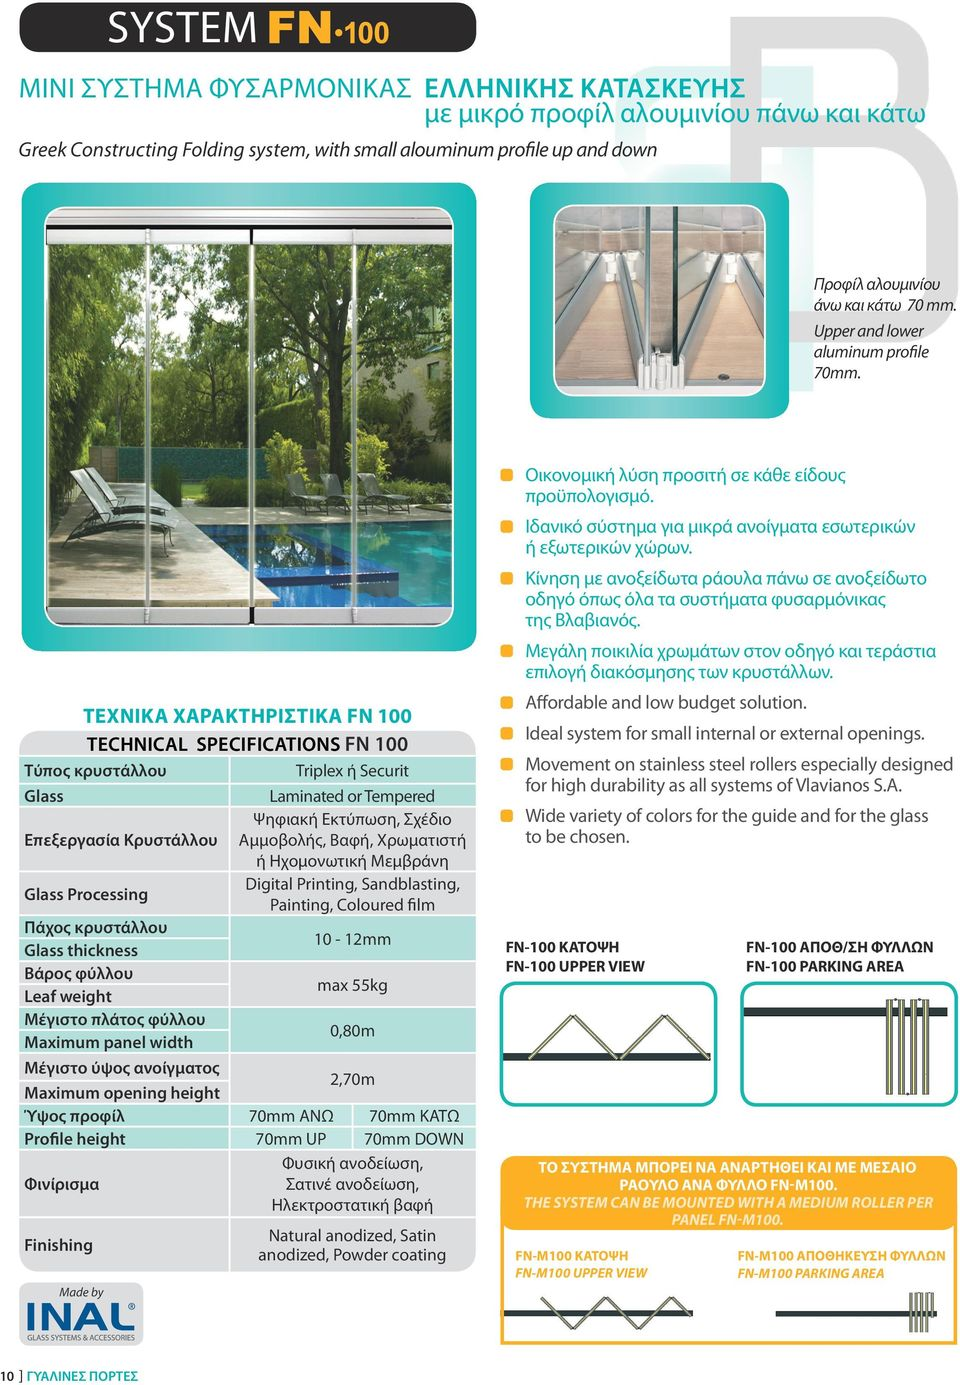 Tεχνικά χαρακτηριστικά FN 100 Technical Specifications FN 100 Triplex ή Securit Laminated or Tempered Επεξεργασία Κρυστάλλου Αμμοβολής, Βαφή, Χρωματιστή Processing 10-12mm max 55kg 0,80m 2,70m Ύψος